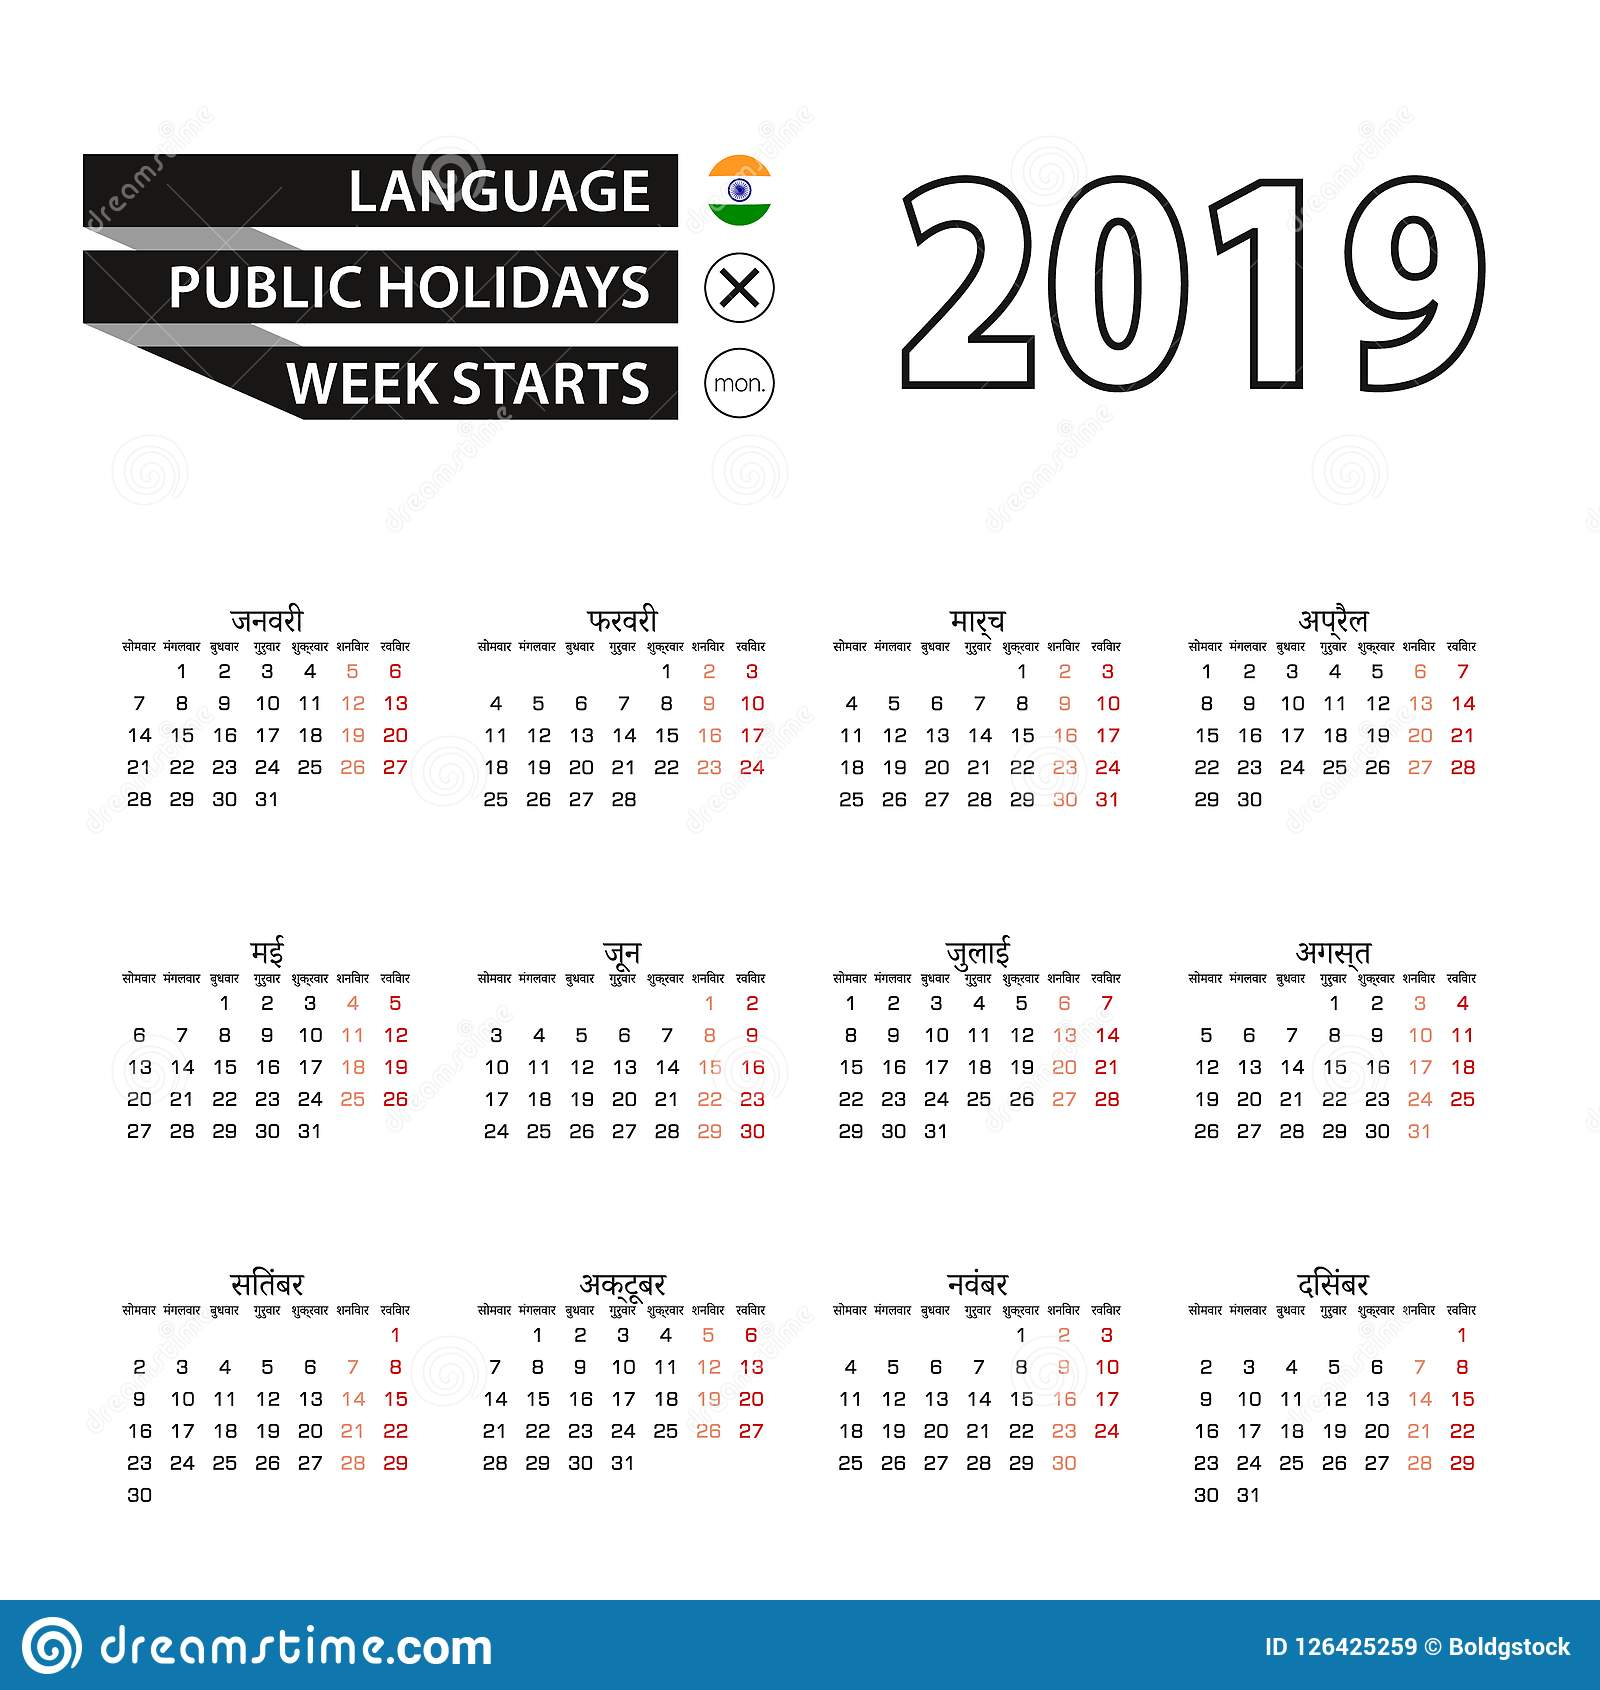 calendar 2019 in hindi language week starts on monday